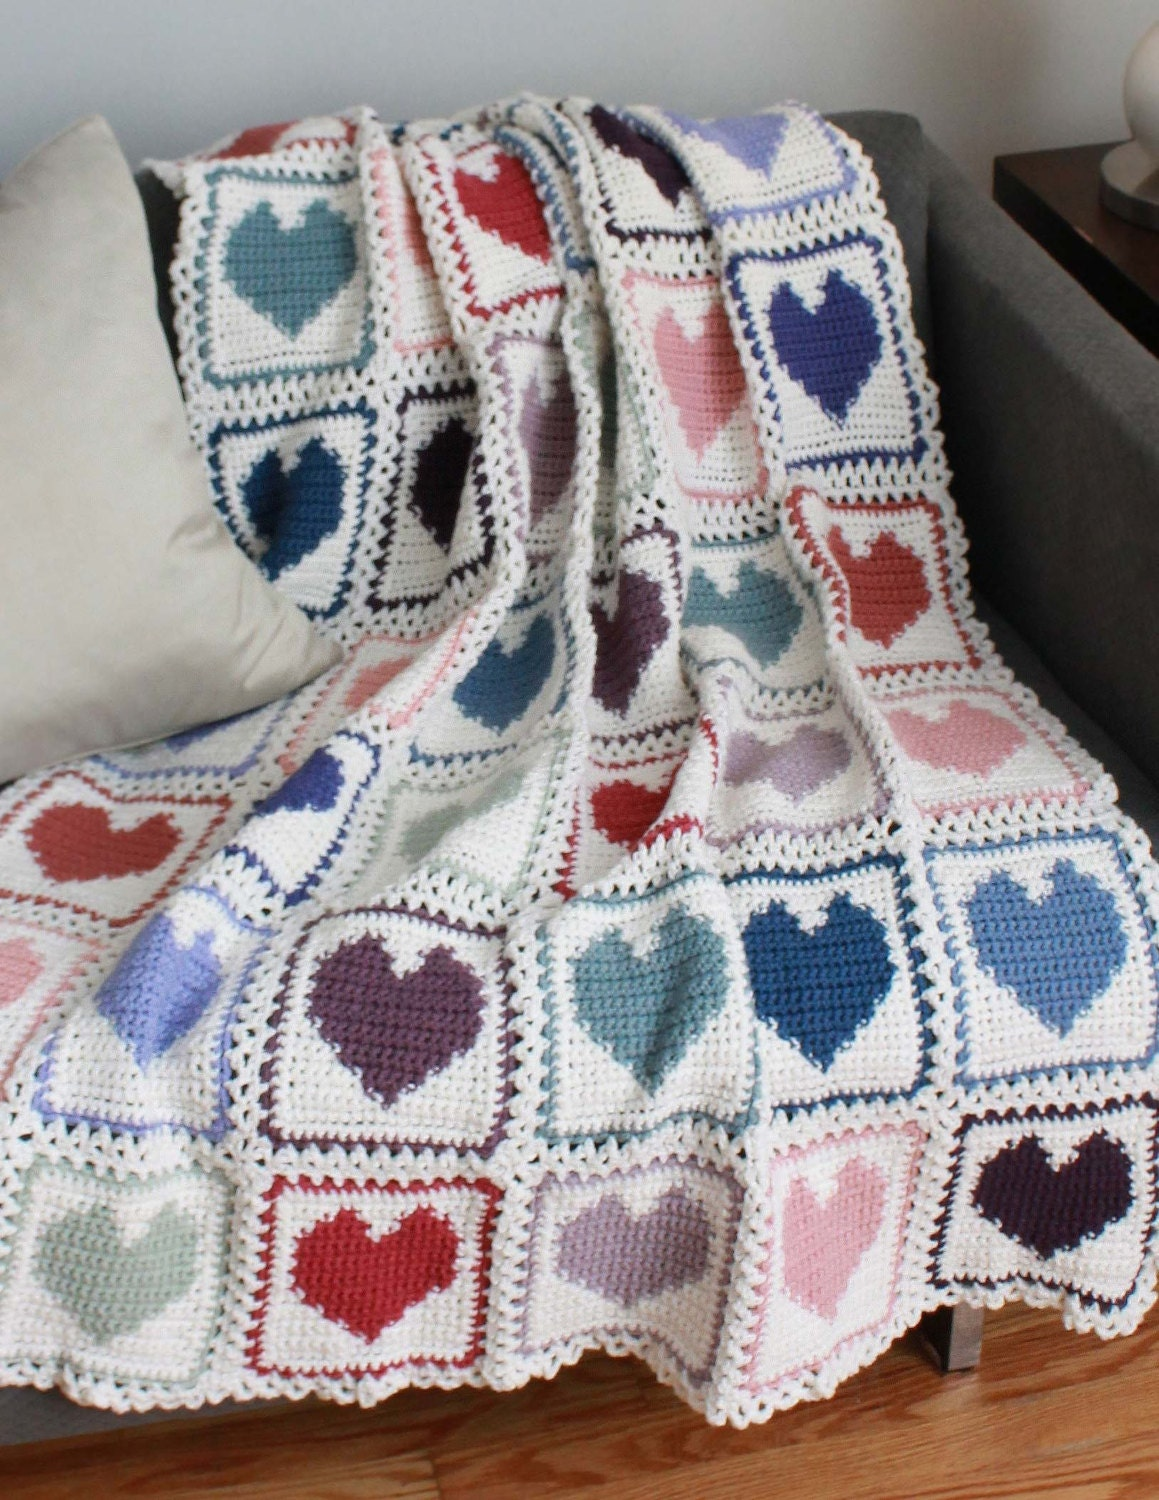 Crochet Afghan Patterns With Hearts : Scrap Hearts Afghan Pattern PDF